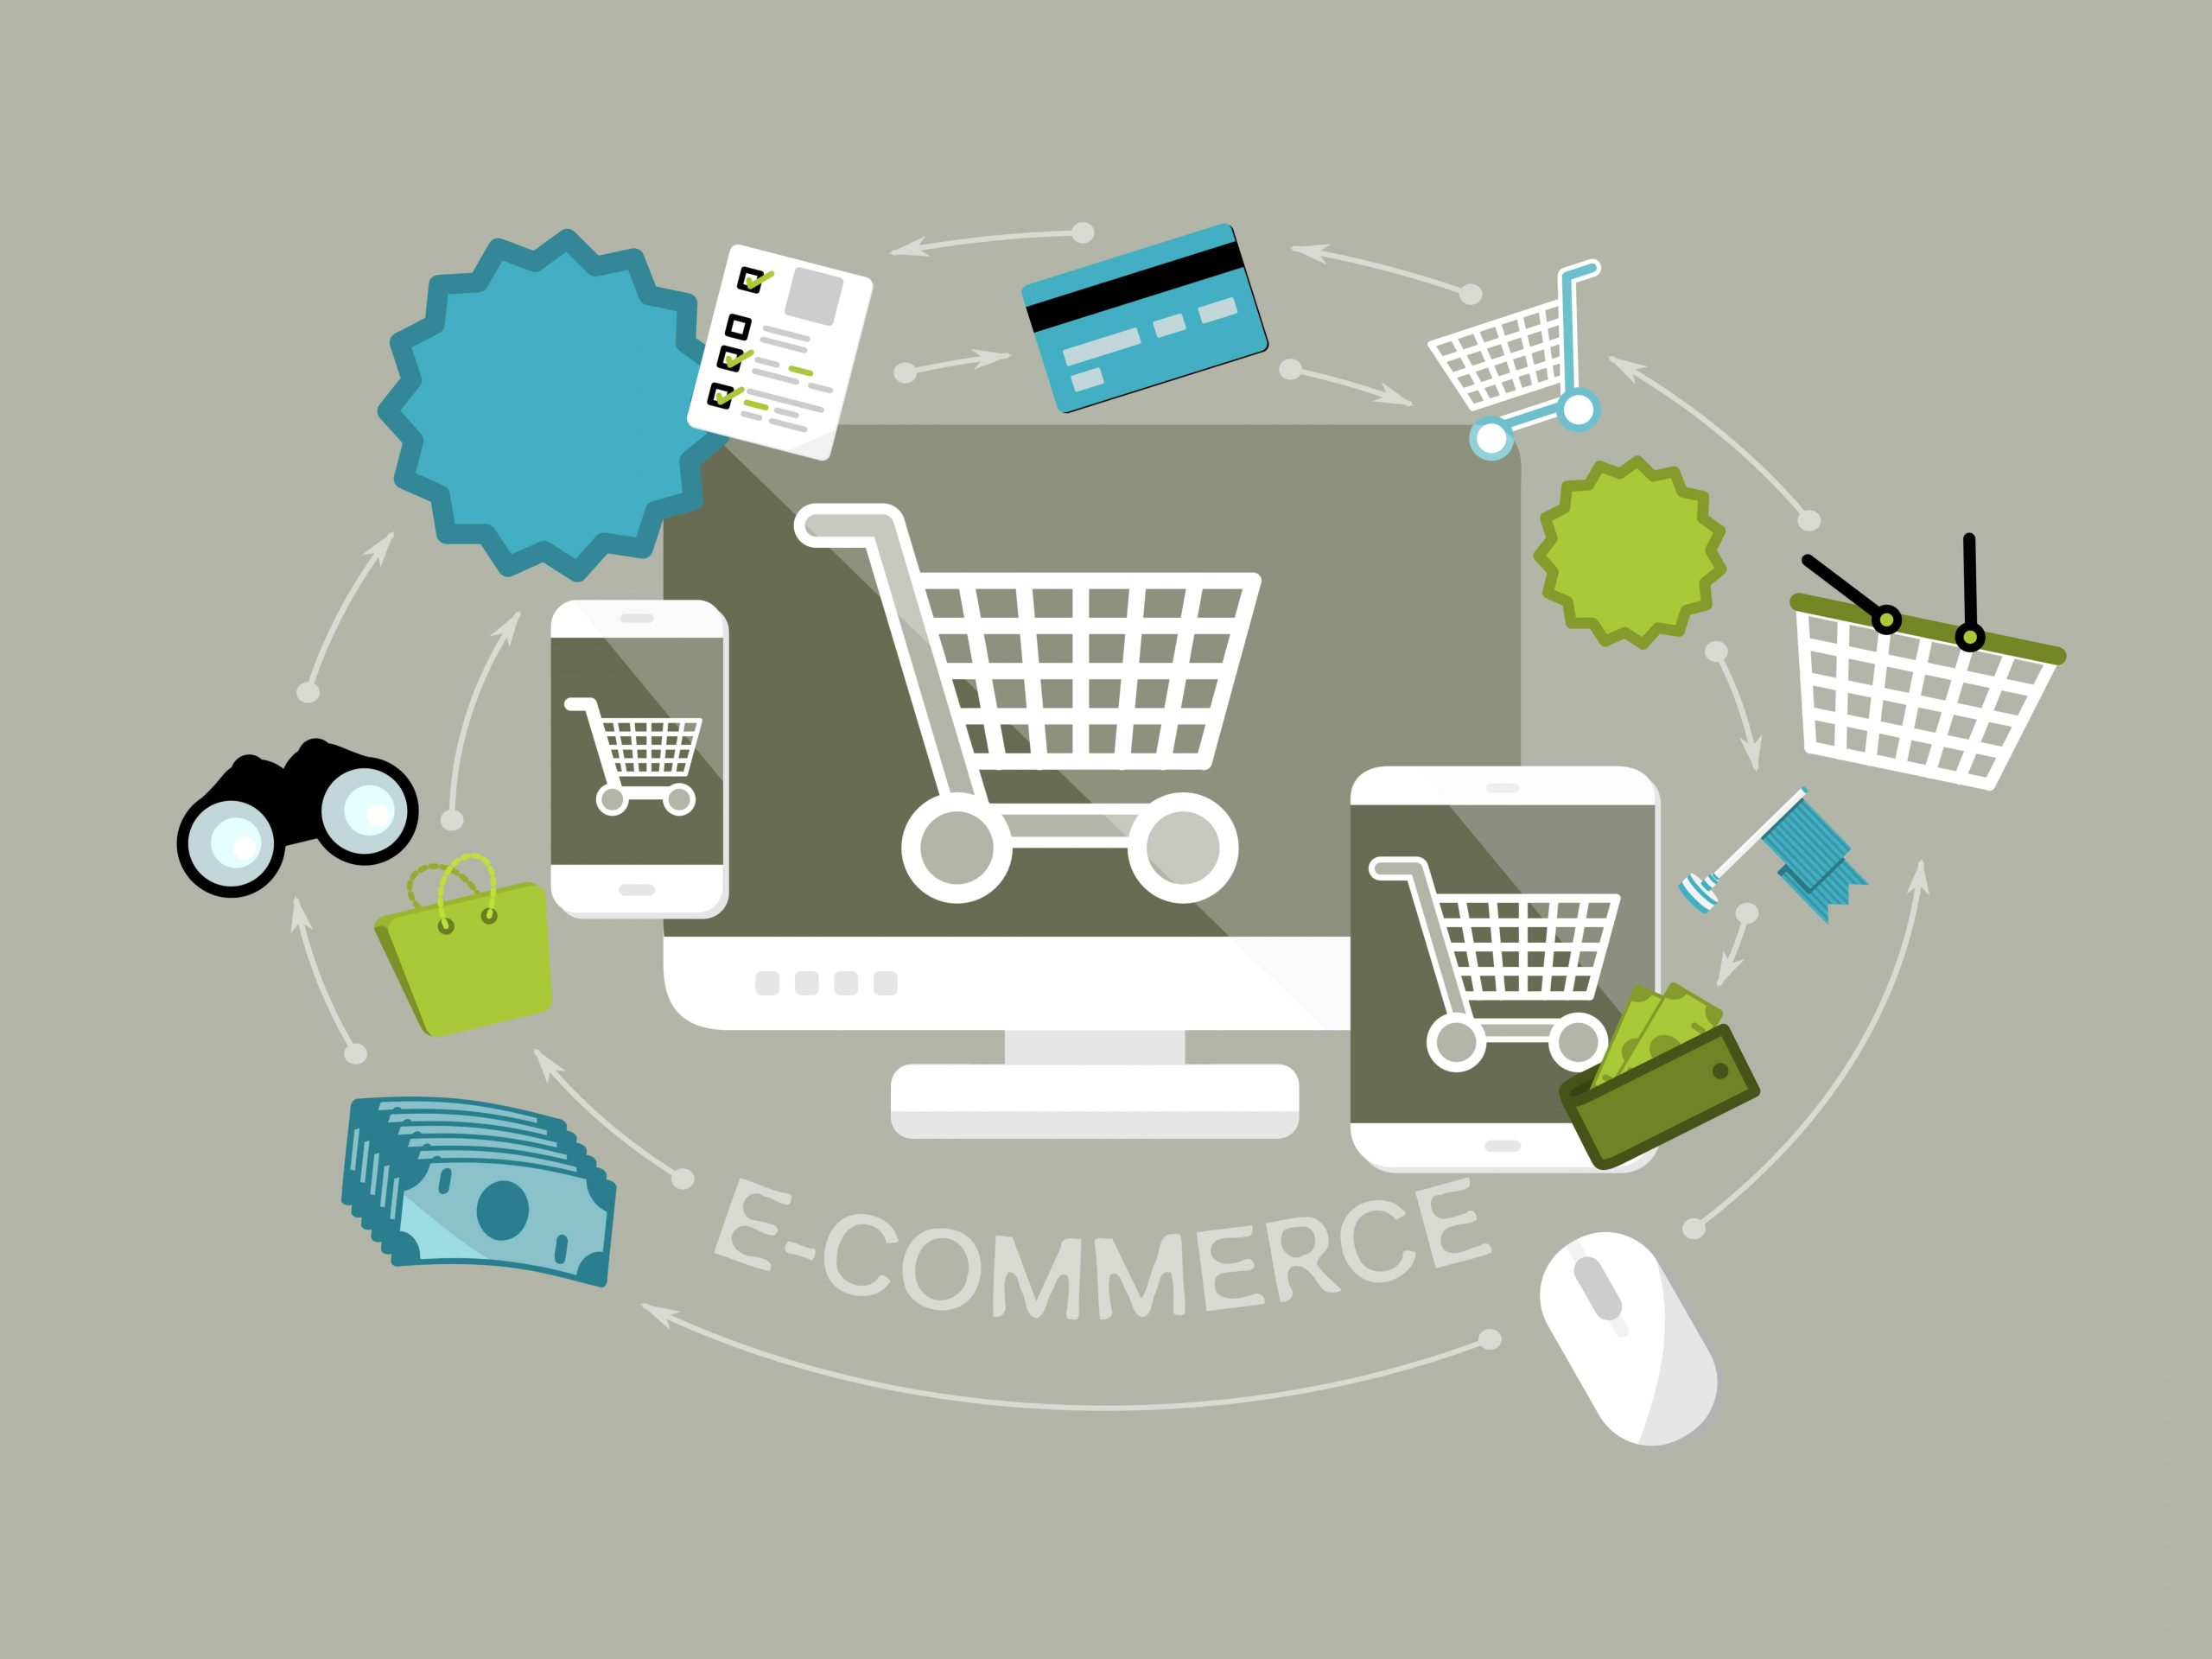 Ecommerce and its components